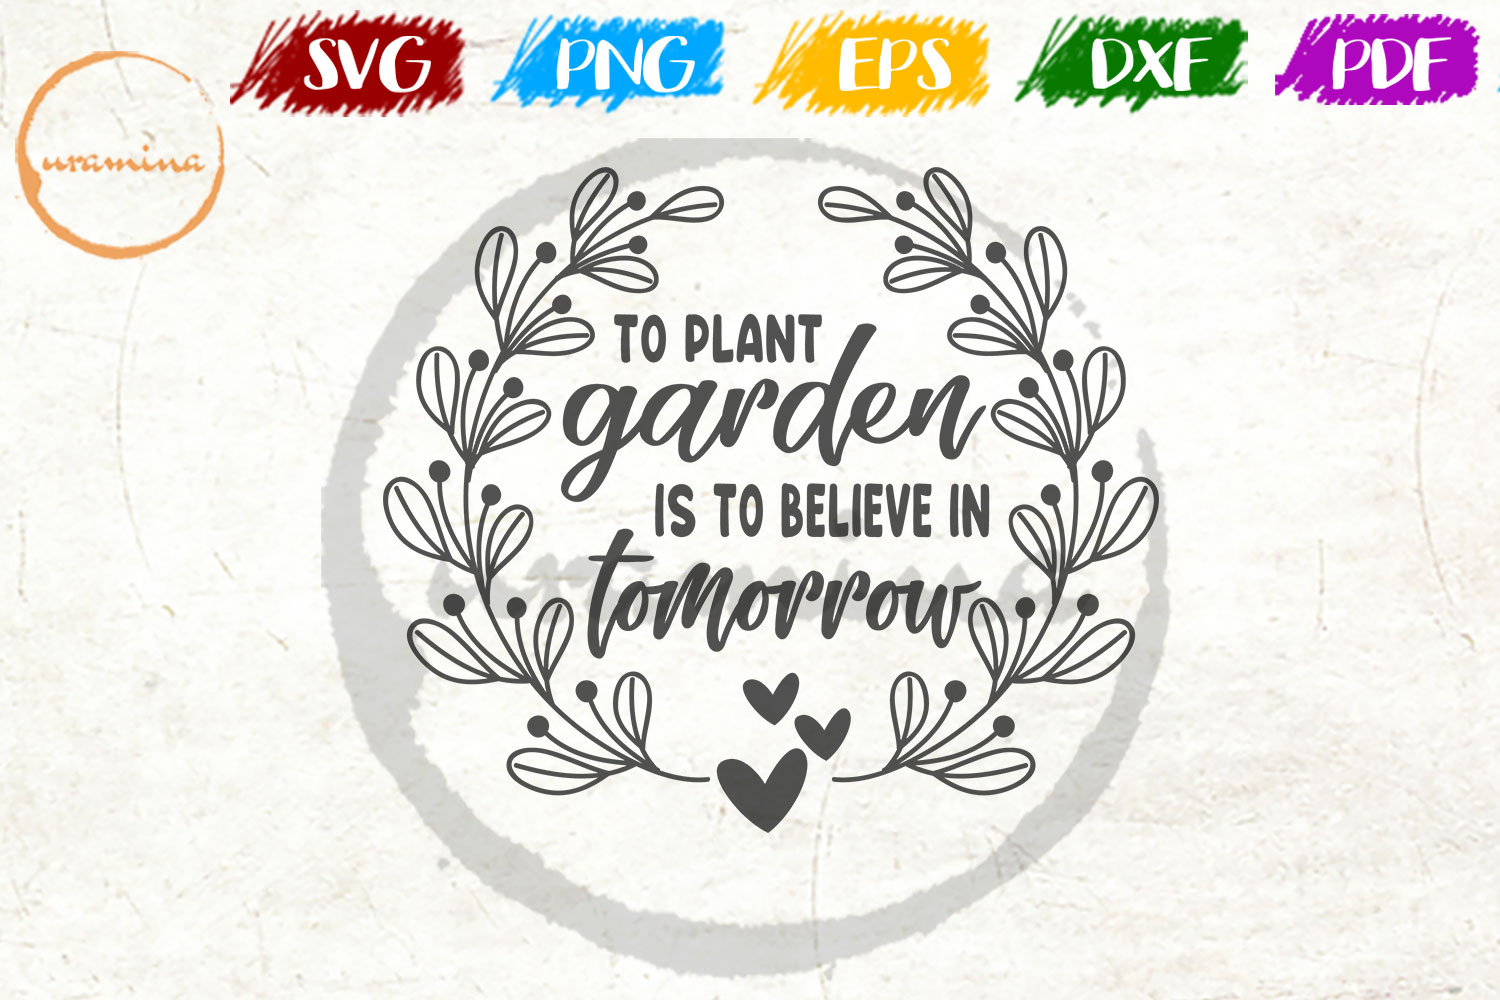 Download Free To Plant Garden Is To Believe In Graphic By Uramina Creative for Cricut Explore, Silhouette and other cutting machines.